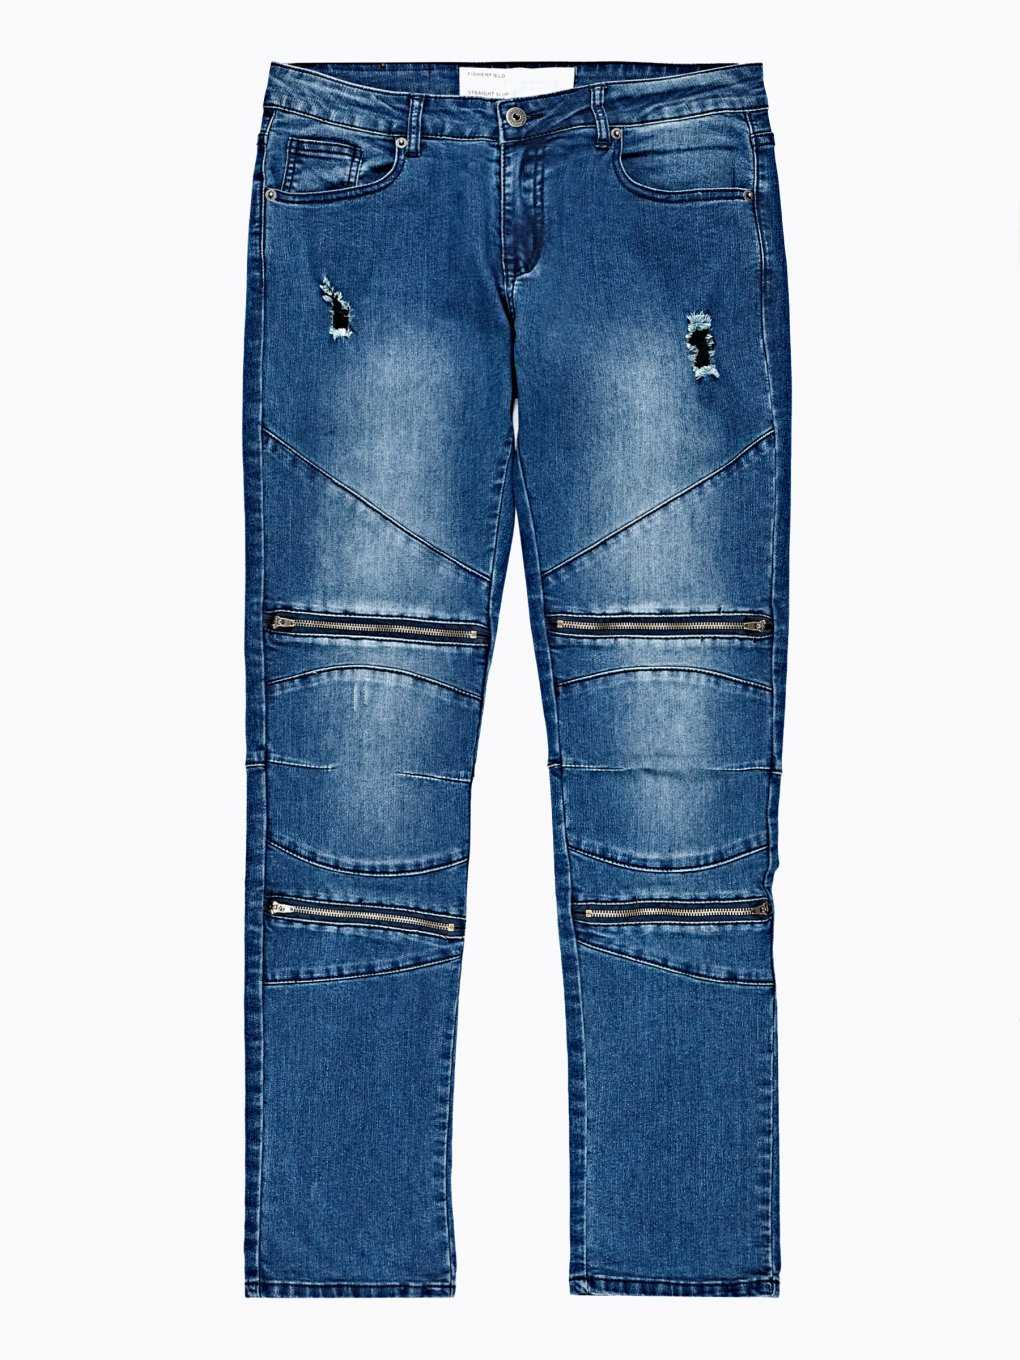 MOTORKÁRSKE DŽÍNSY STRAIGHT SLIM FIT